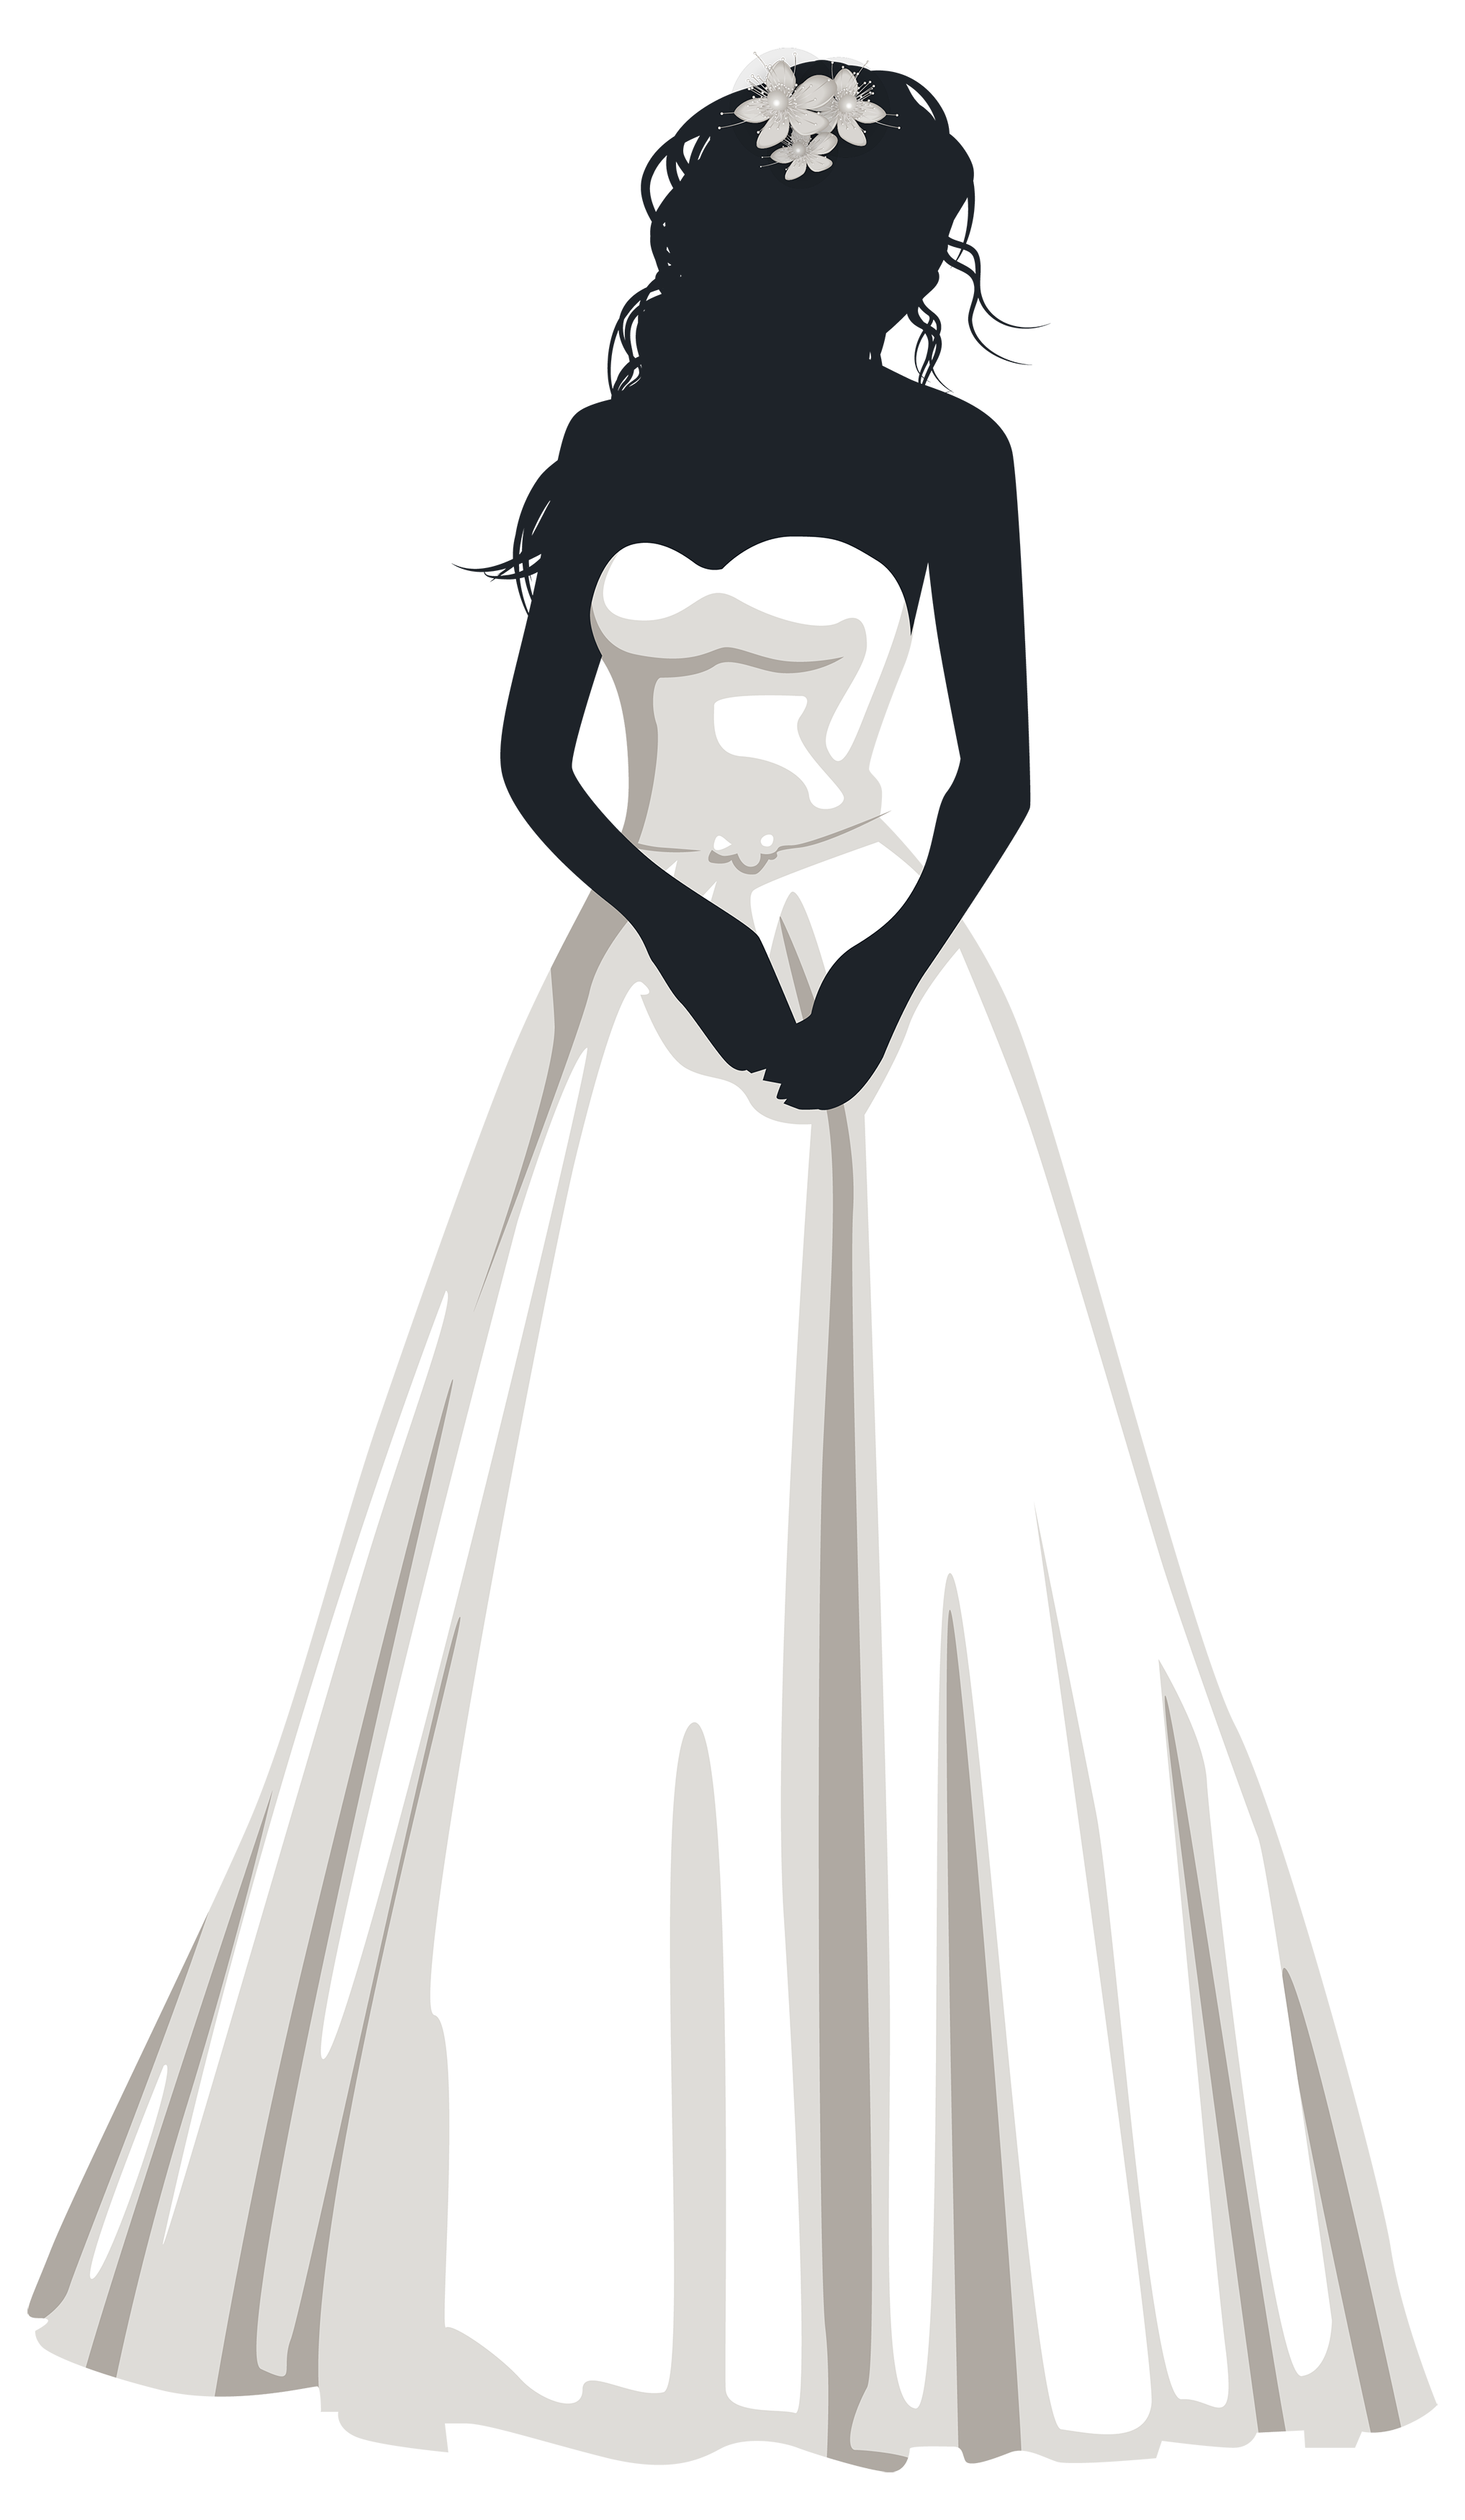 Bride Silhouette Png Clip Art Bride Clipart Bride Silhouette Wedding Dress Sketches